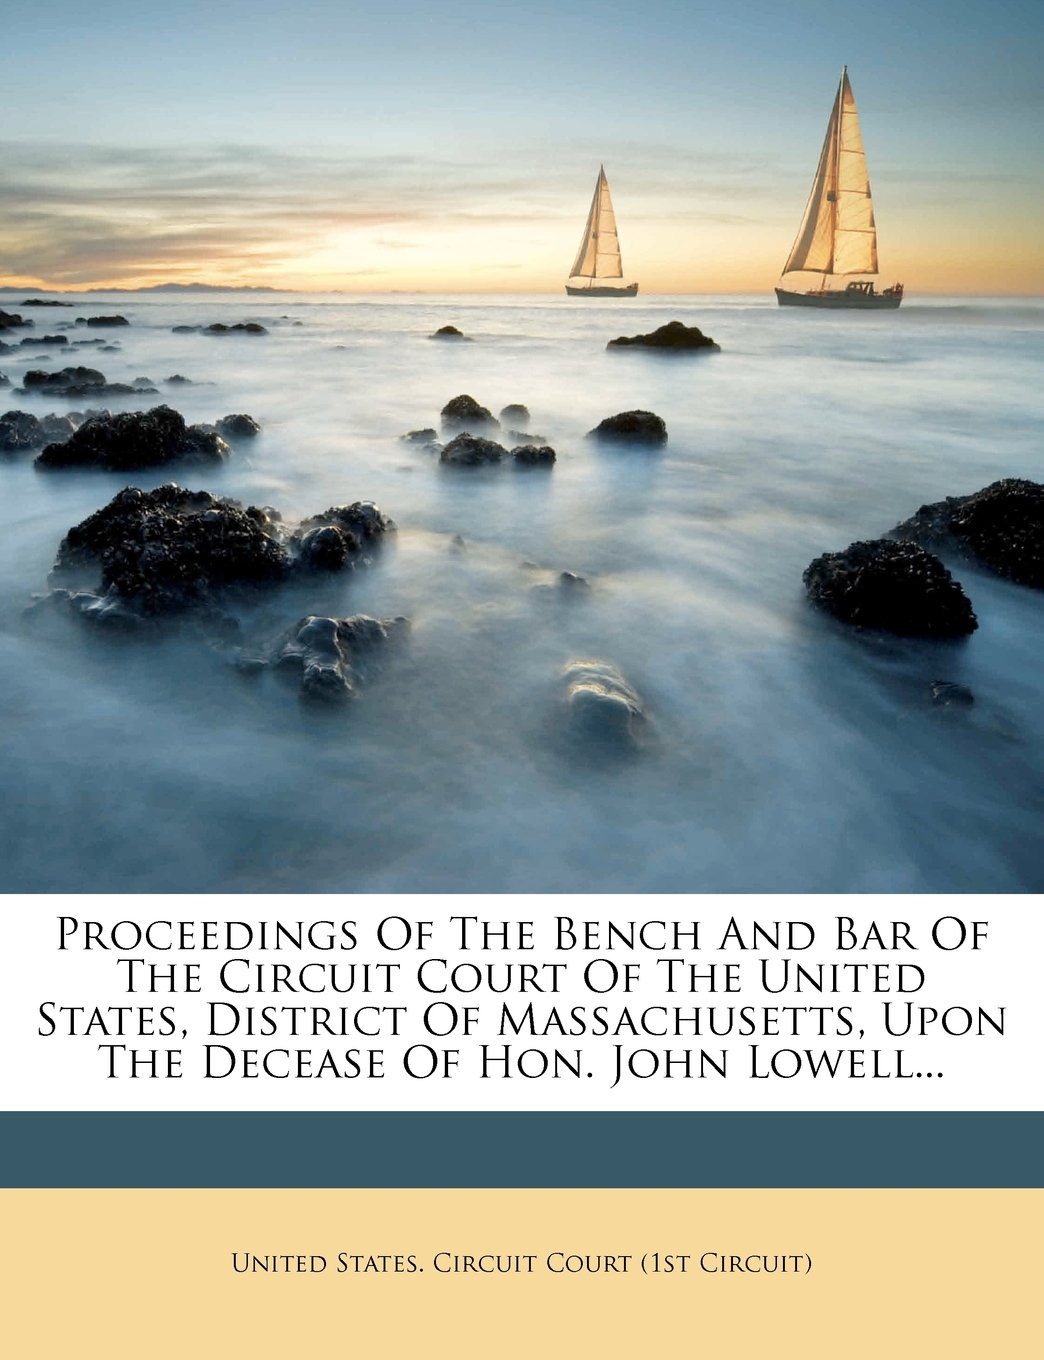 Download Proceedings Of The Bench And Bar Of The Circuit Court Of The United States, District Of Massachusetts, Upon The Decease Of Hon. John Lowell... ebook